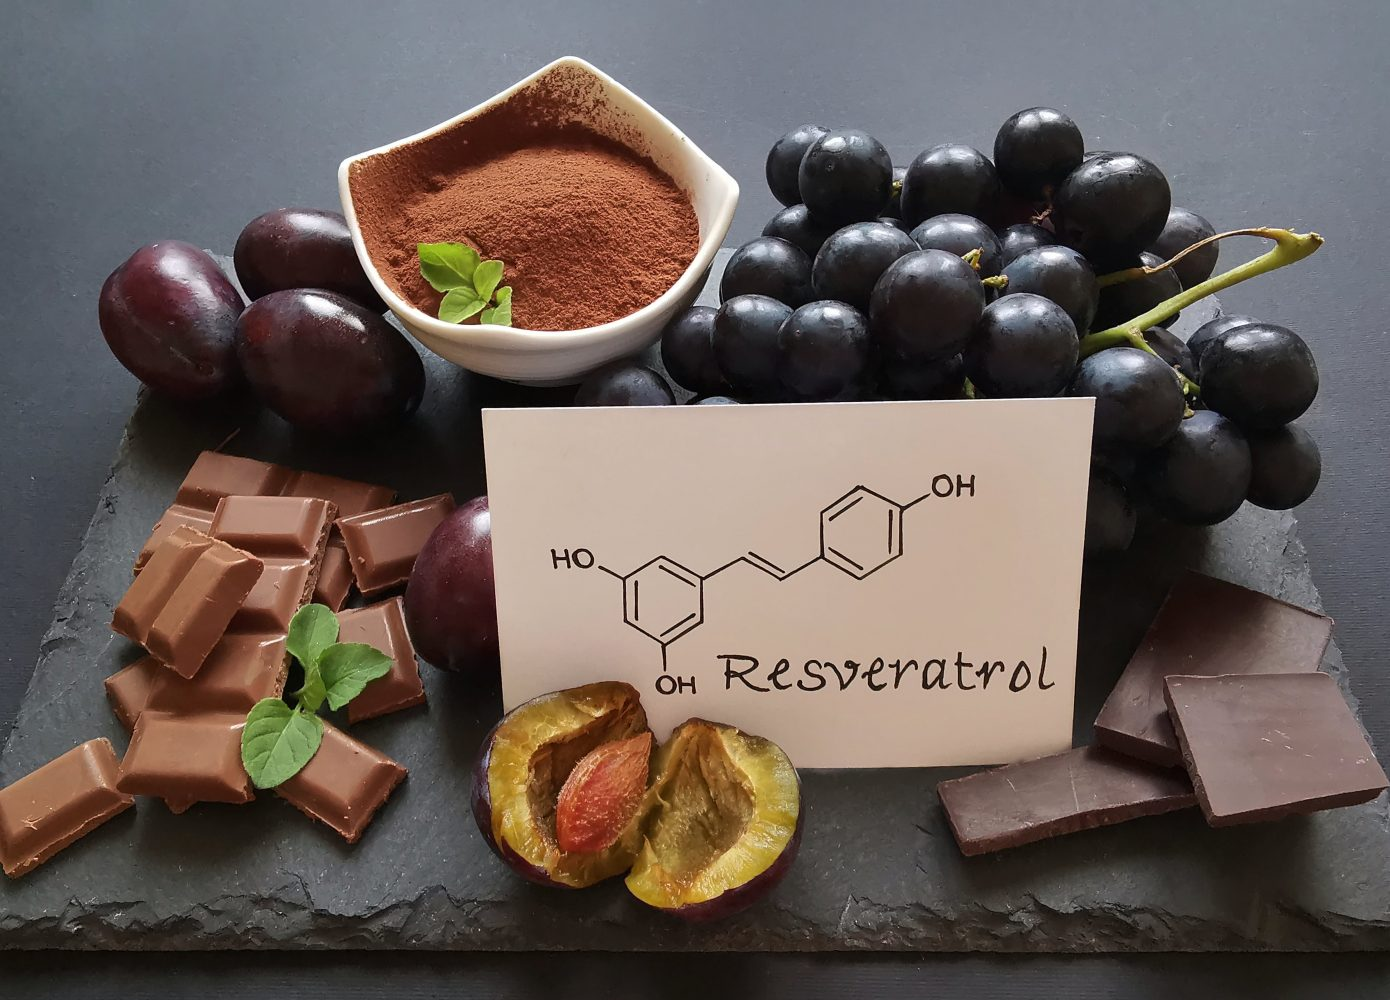 Protective Effects of Resveratrol Against Harmful UV Rays